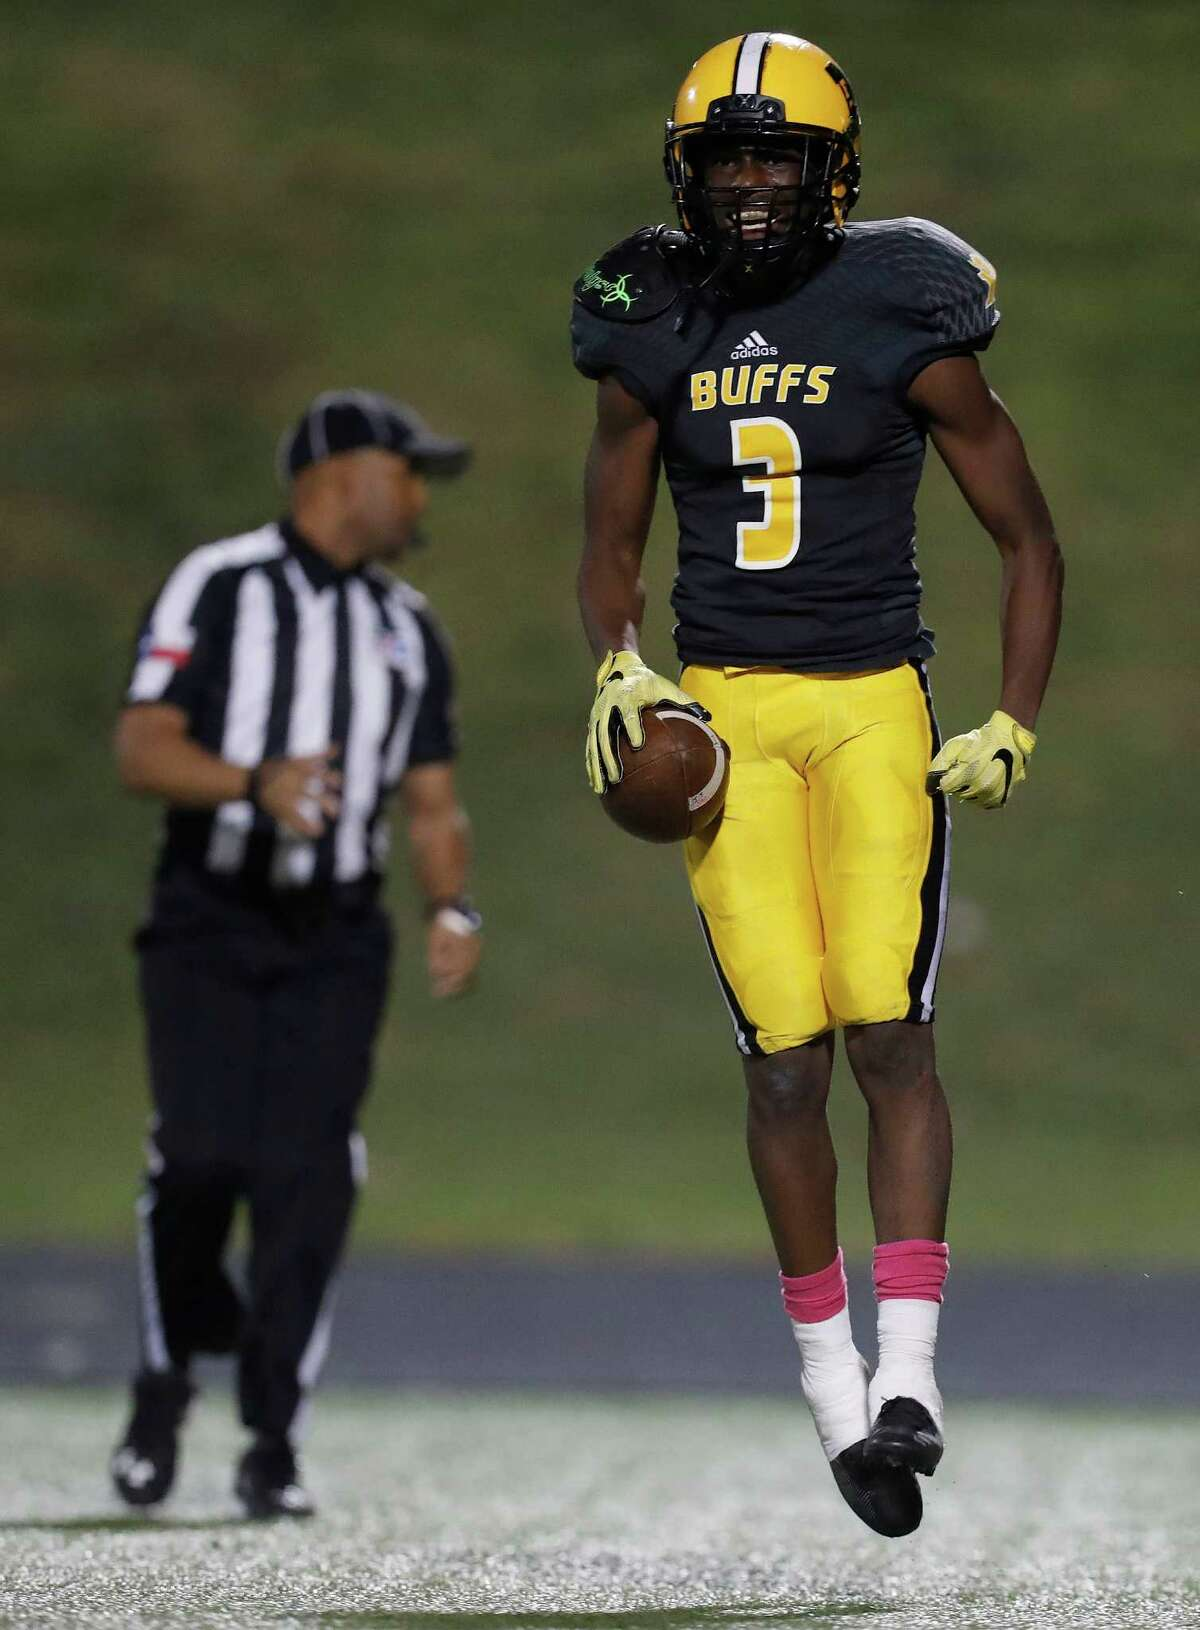 Marshall's wide receiver Henry Thomas (3) celebrates a touchdown during the second half of a high school football game between Elkins and Marshall at Hall Stadium, Thursday,Oct. 20, 2016 in Missouri City.